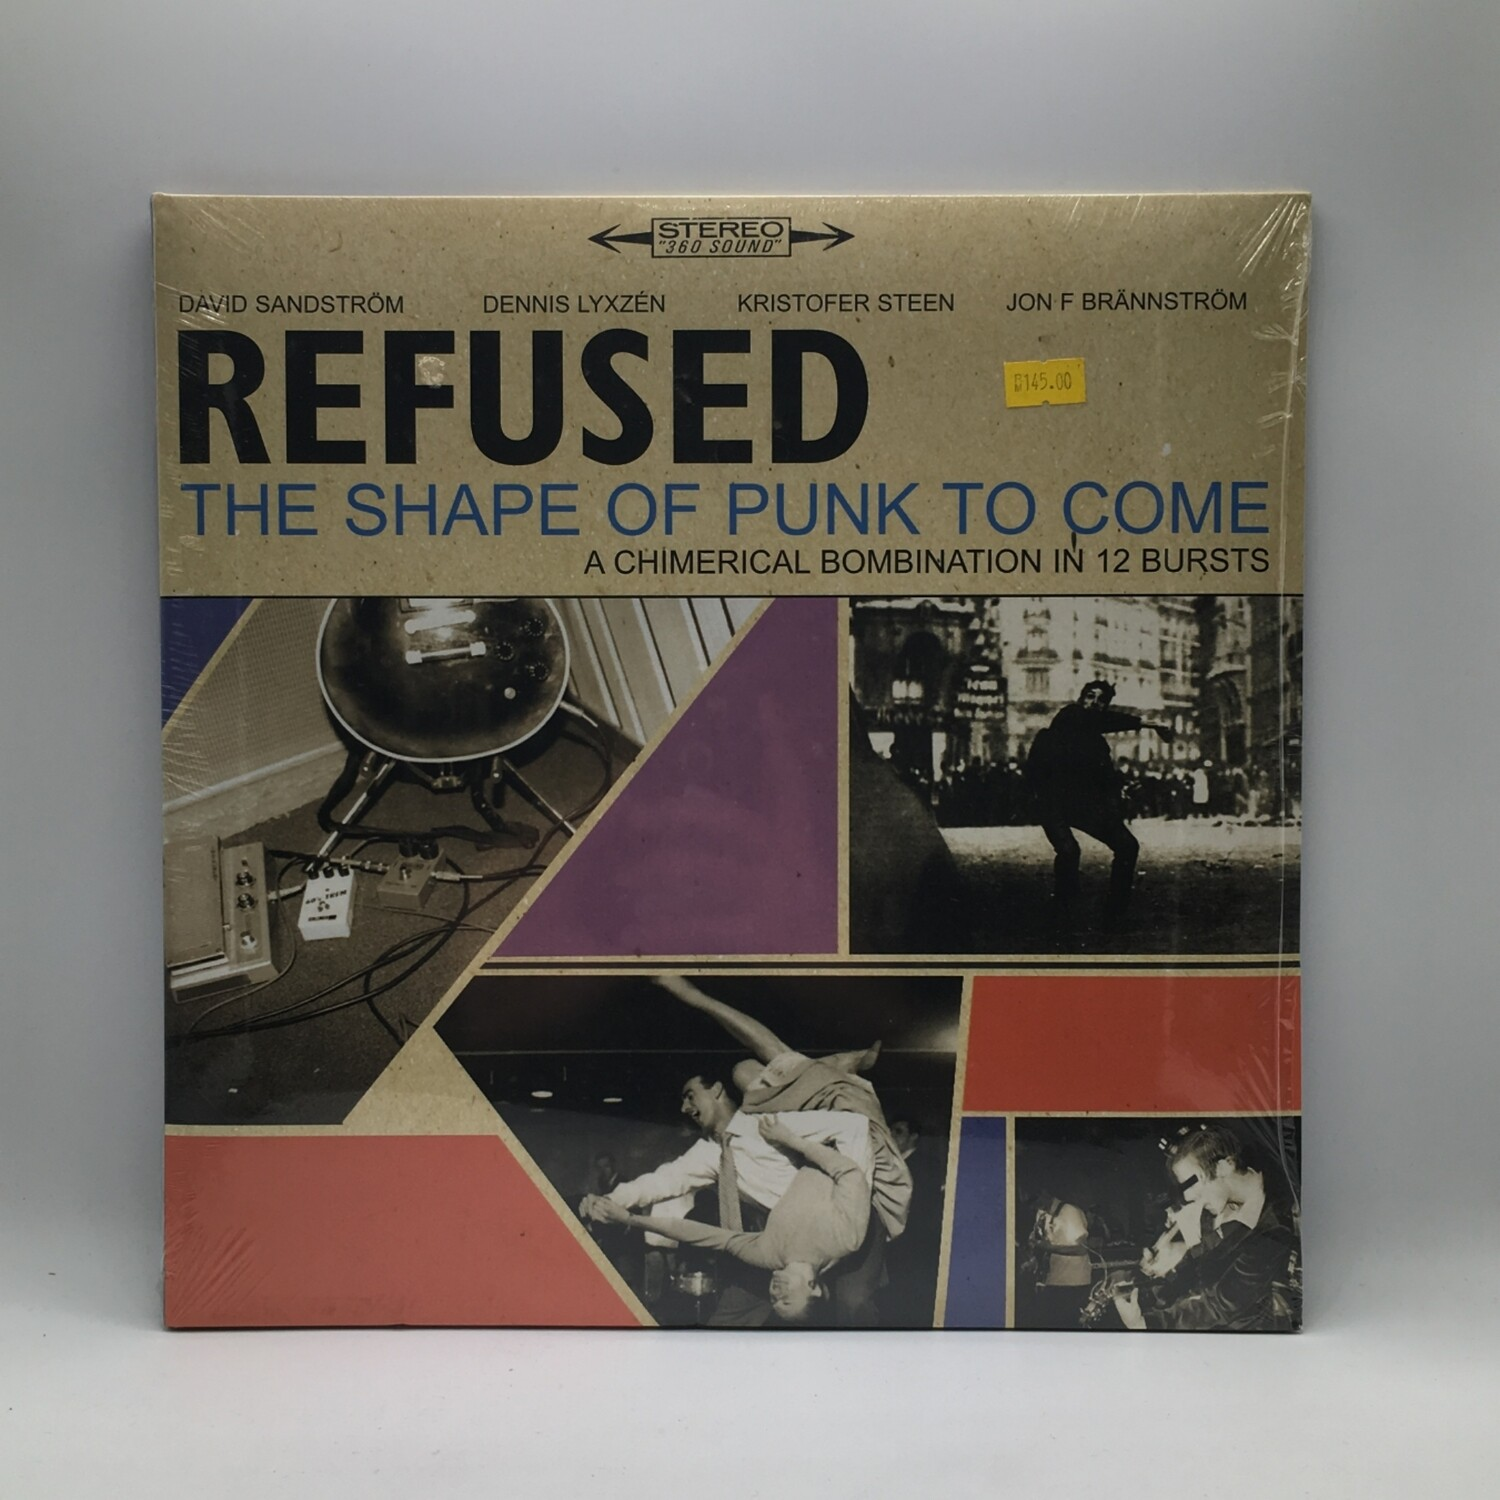 REFUSED -THE SHAPE OF PUNK TO COME- 2XLP (180 GRAM VINYL)